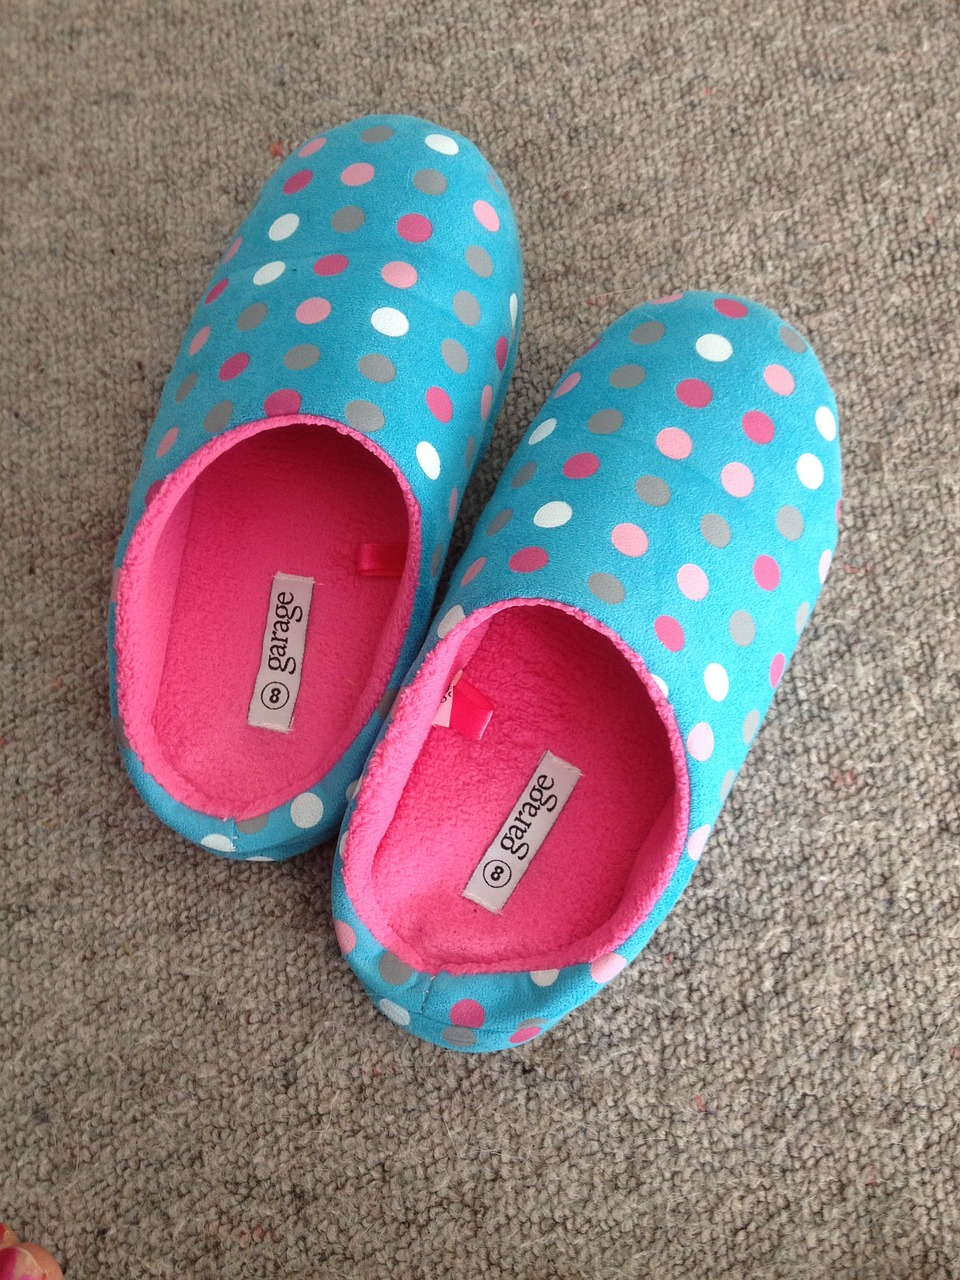 slippers -  Mother's Day Gifts for Mom's in Senior Living #slippers  #mothersday #gifts #seniors